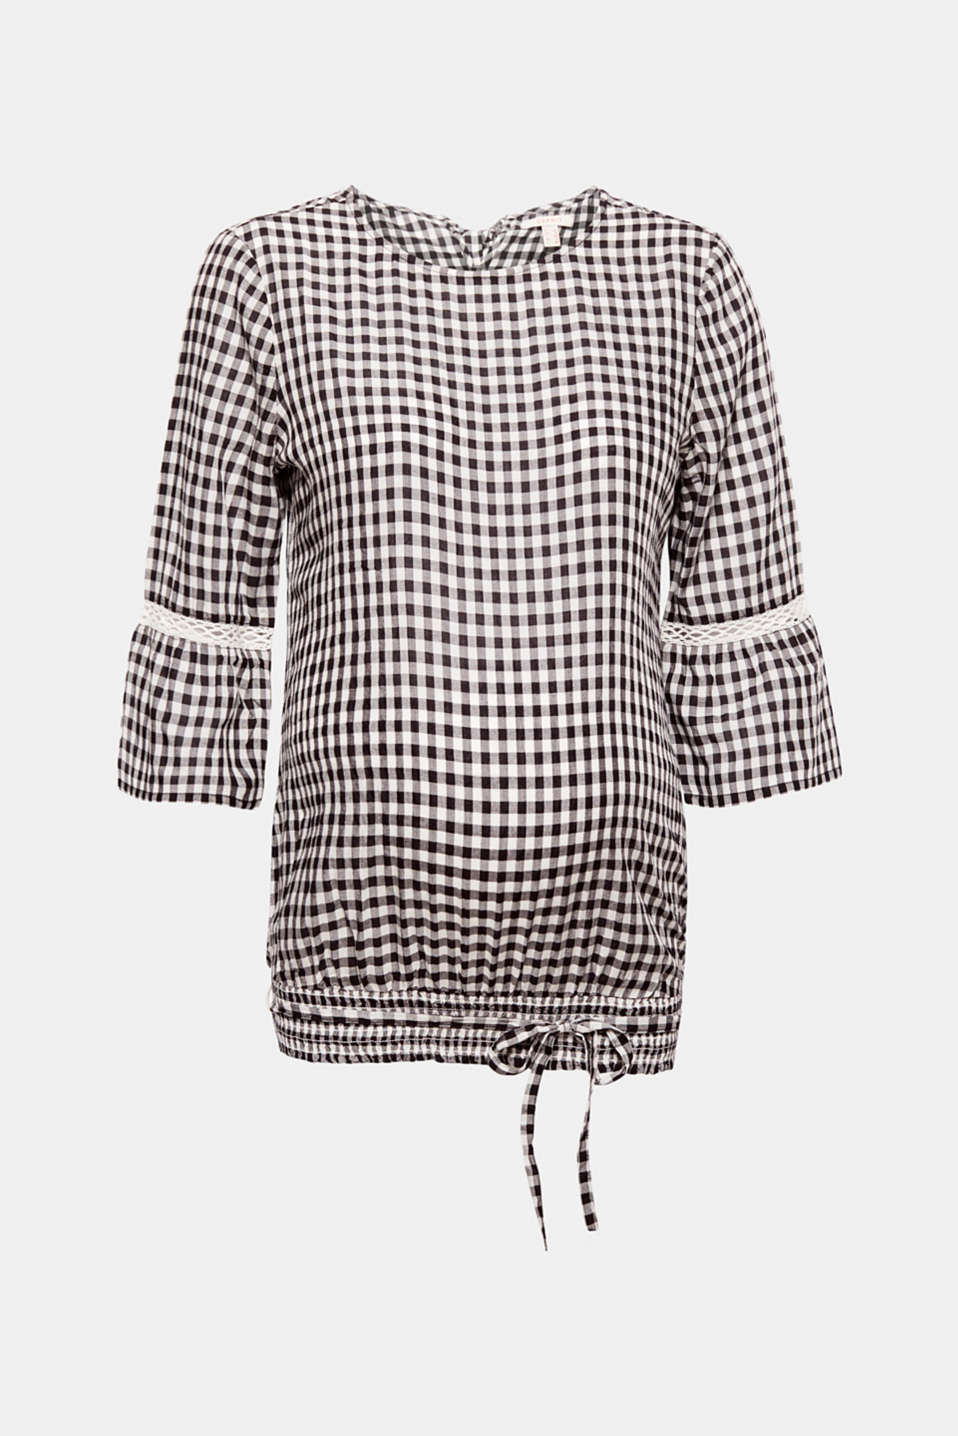 This flowing blouse gets its charming look from the classic gingham check pattern, the three-quarter length sleeves with lace details and the bow at the back of the wide, round neckline.